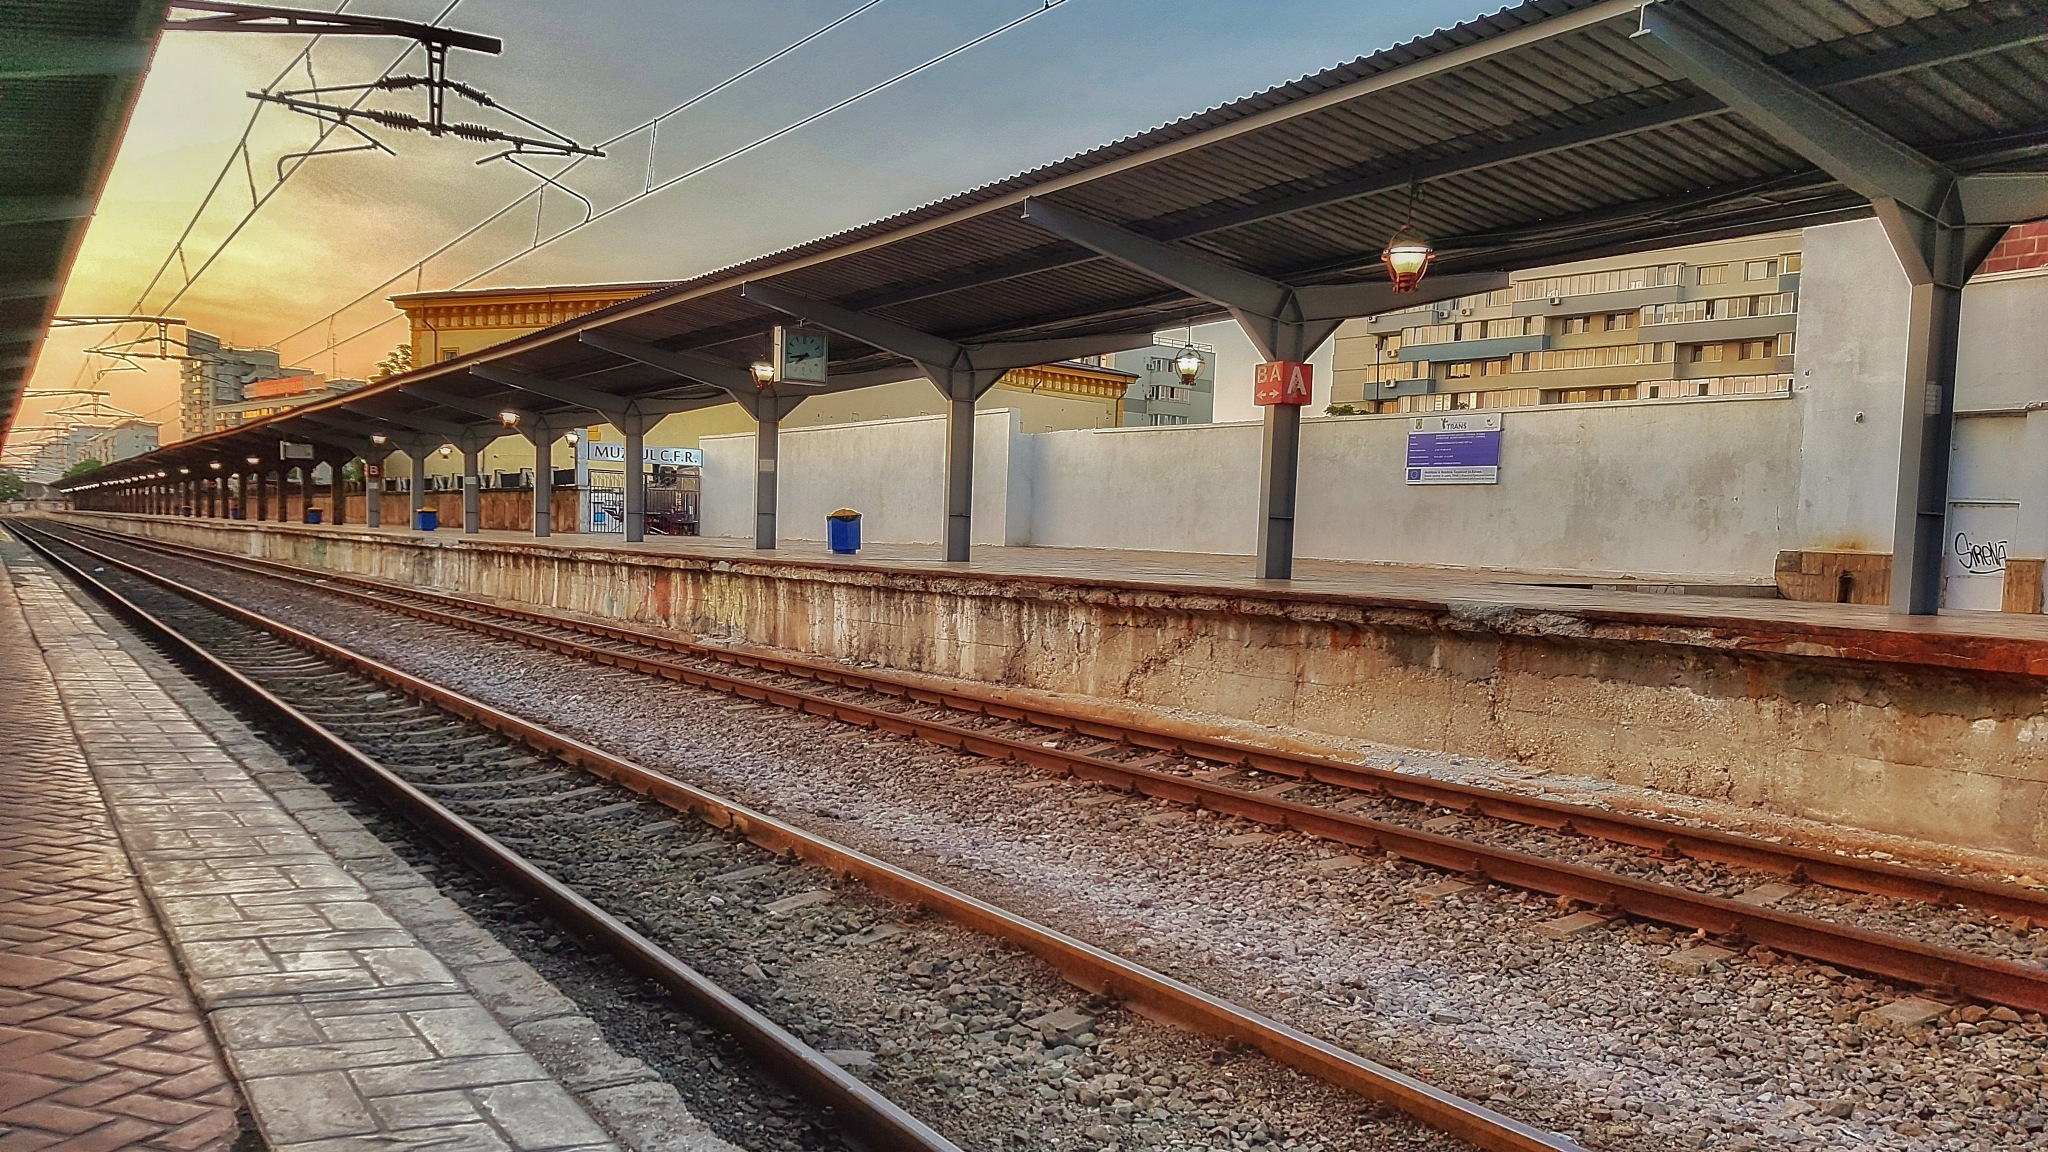 Railway into the sunset by Costin0509